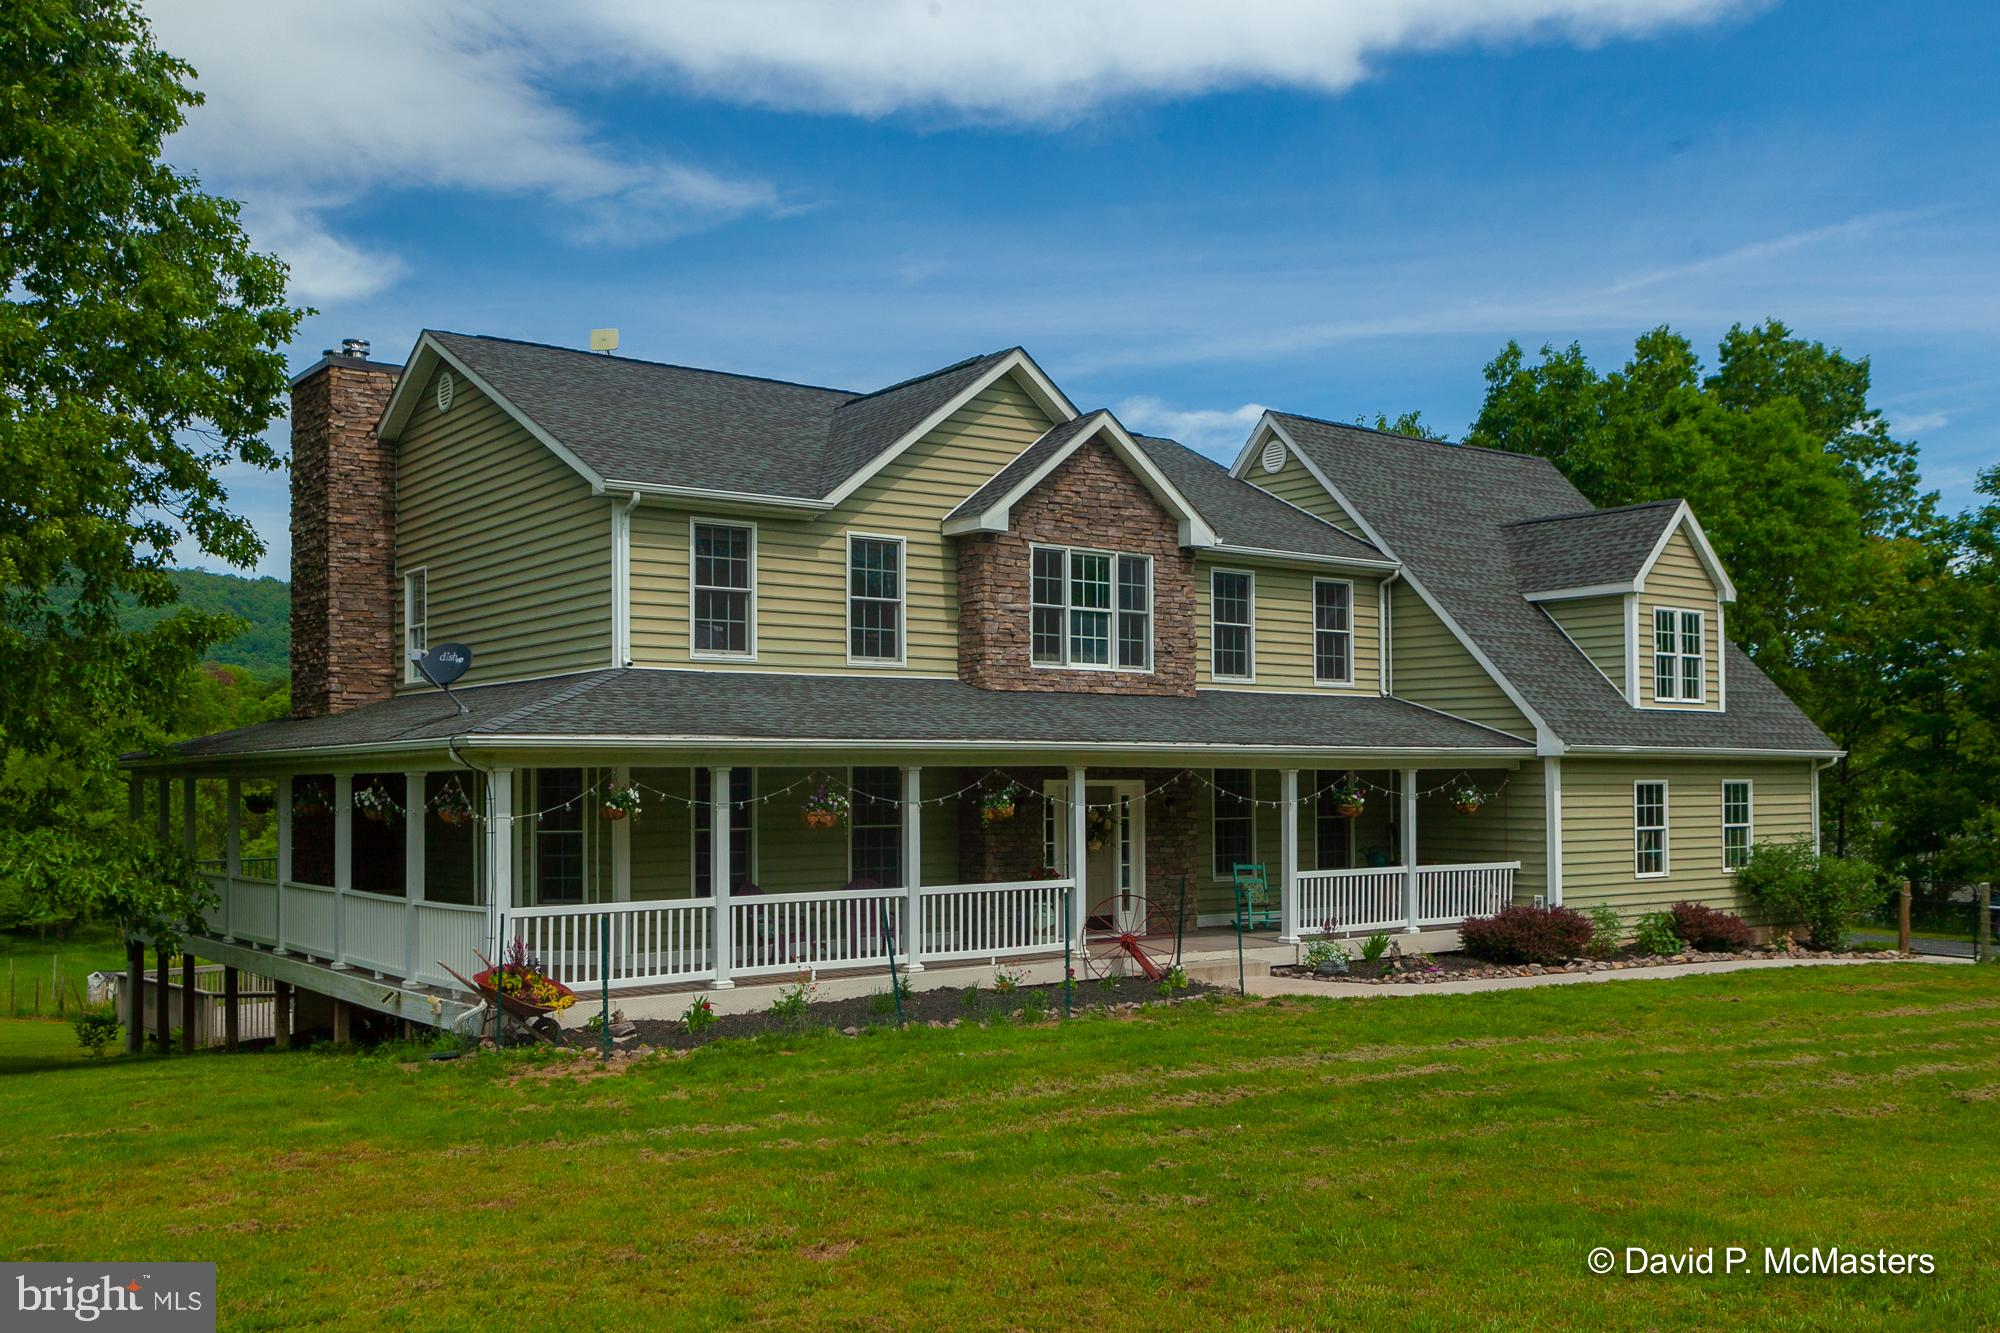 You'll love this gorgeous 5br/4ba custom built home on 5 acres overlooking private pond. Spend your